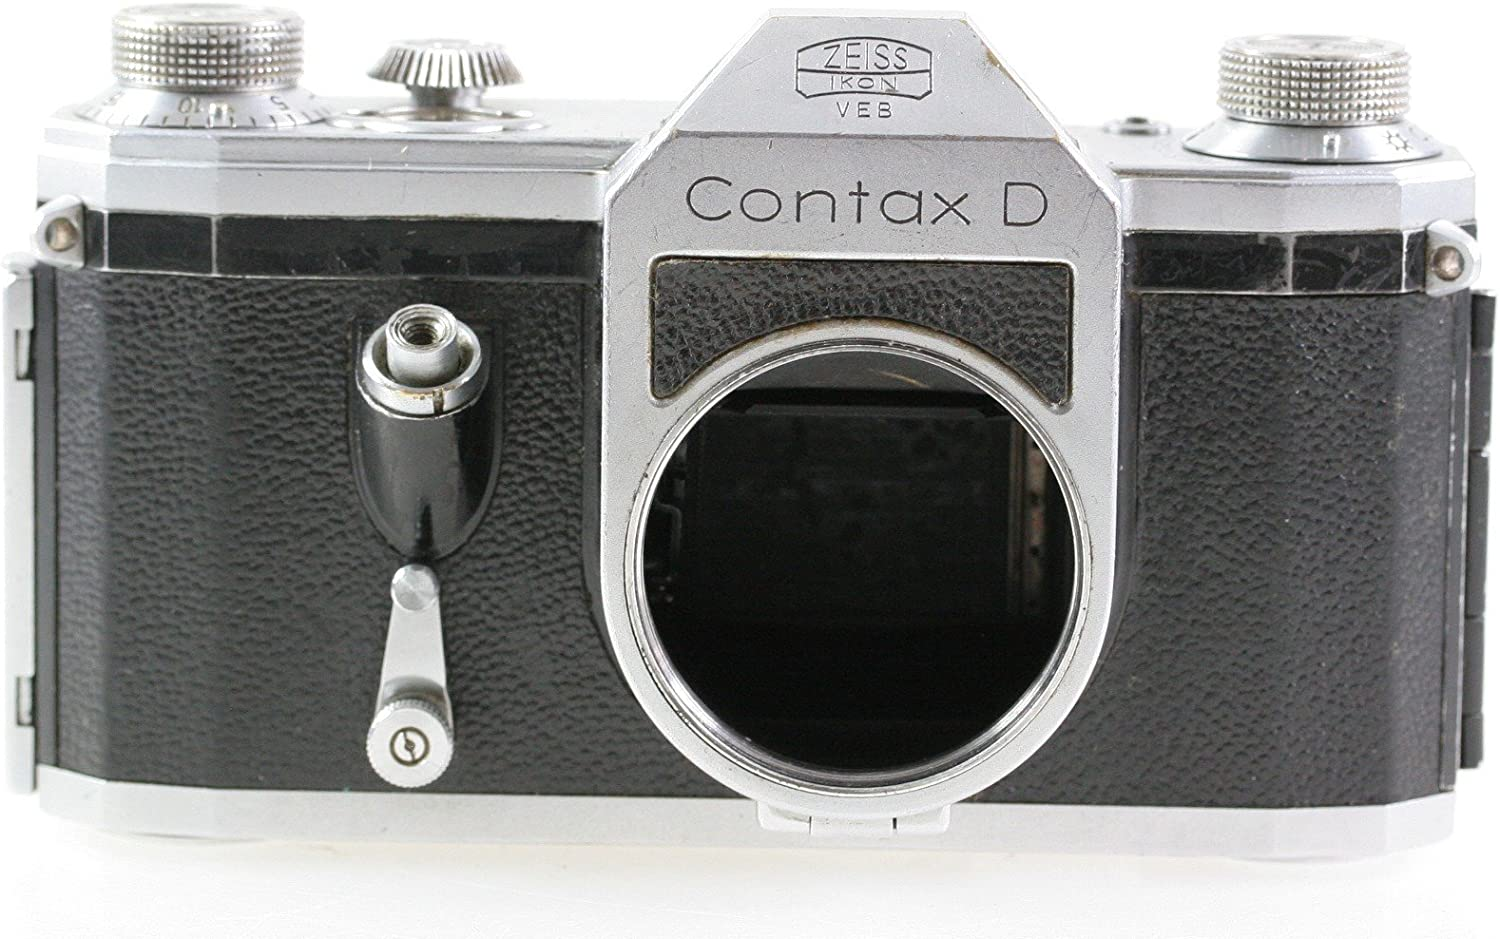 Zeiss Ikon Contax VEB D Body Reflex Camera Analog